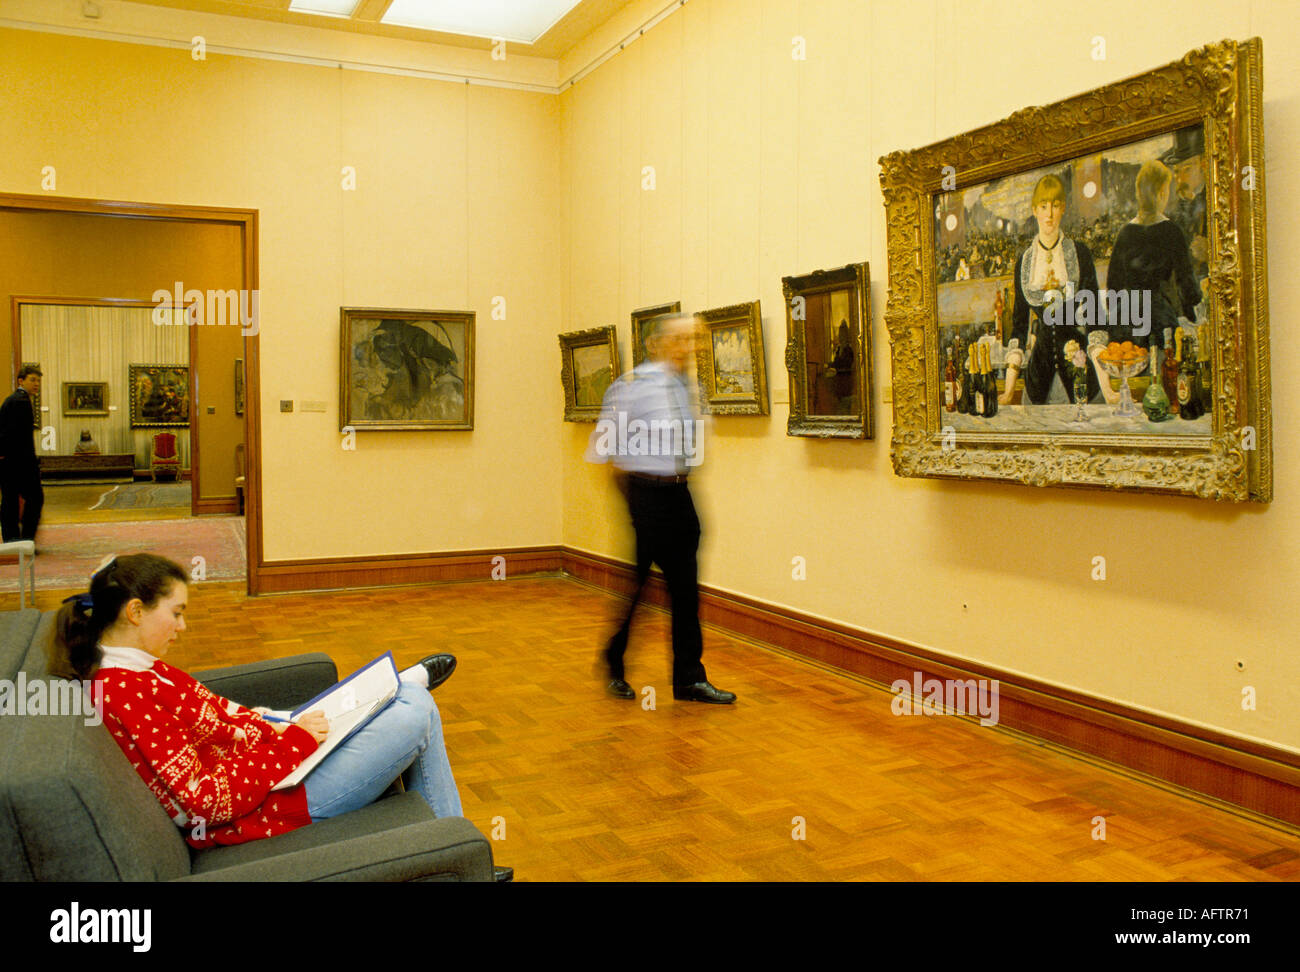 Courtauld art gallery Somerset House London - Stock Image